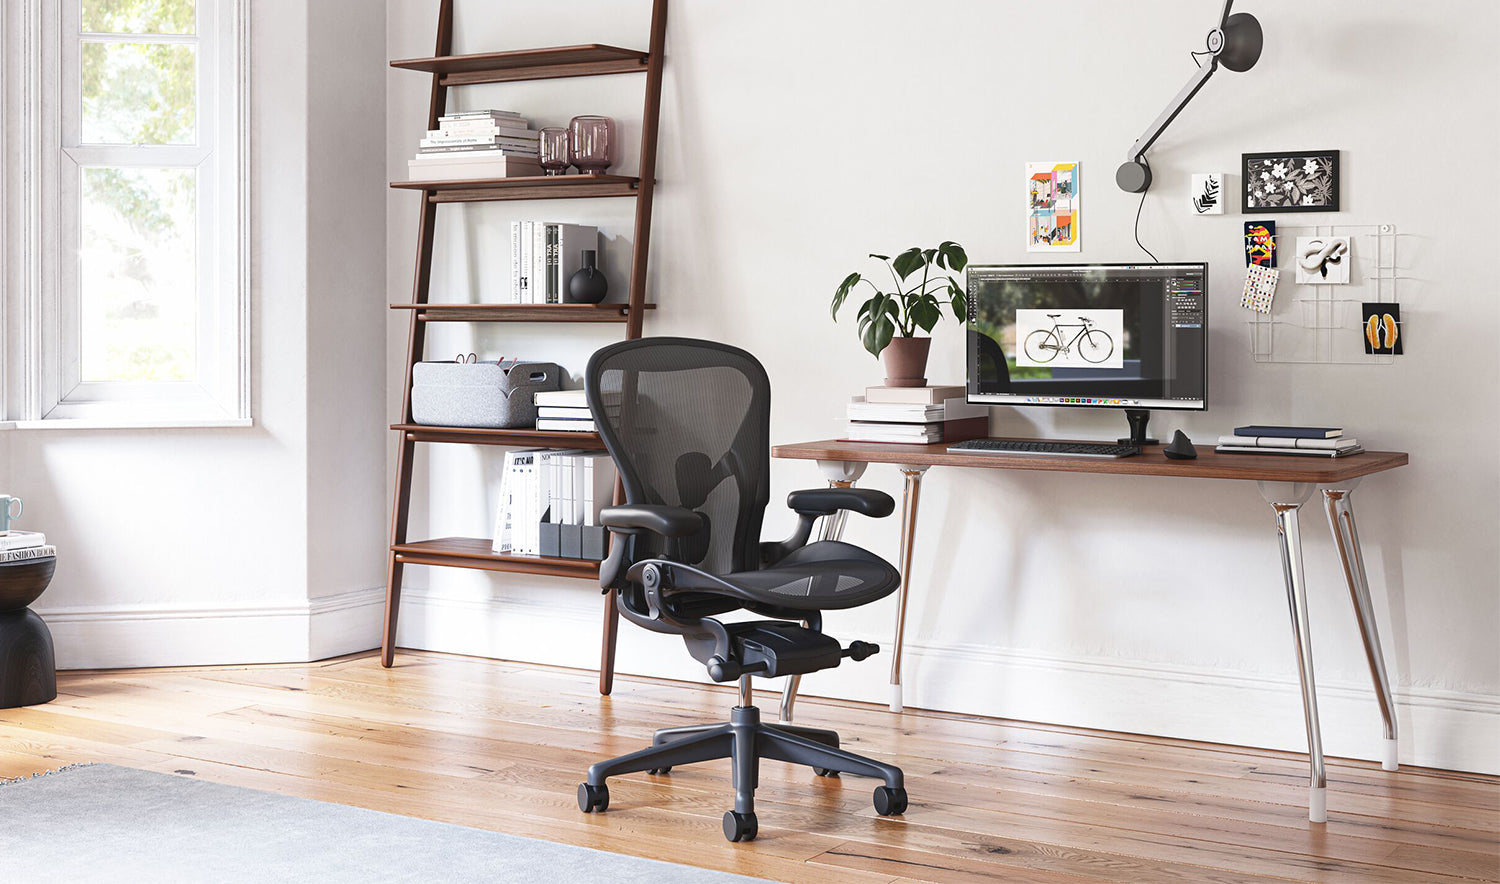 An AbakEnvironments Desk with a walnut top and polished legs, with a graphite Aeron Chair in a light home office setting and Folk Ladder Shelving.